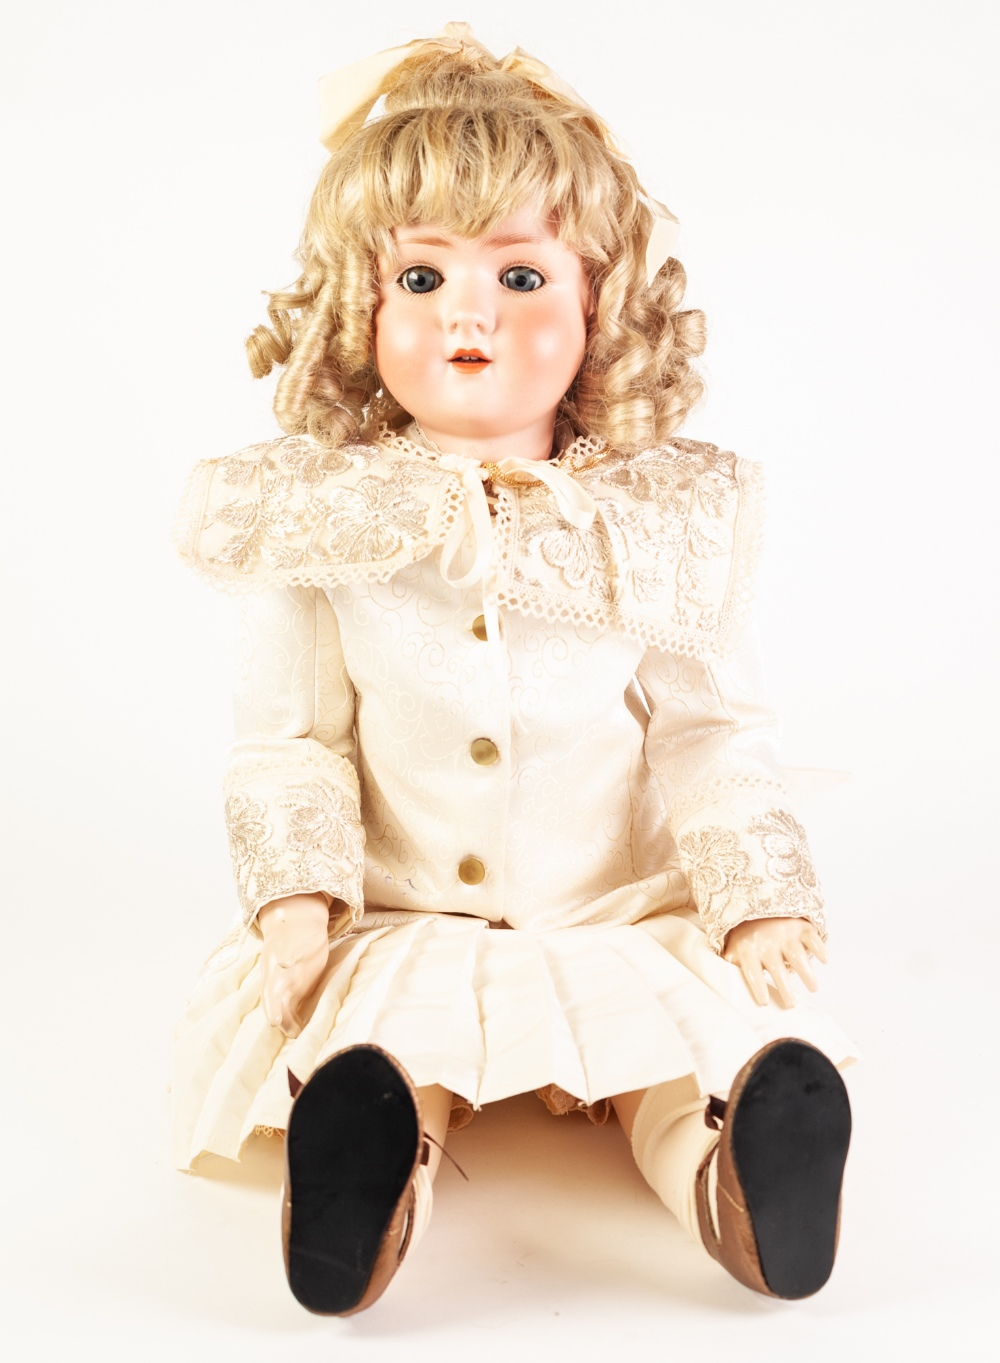 Lot 304 - AN EARLY TWENTIETH CENTURY SIMON AND HALBIG BISQUE HEAD DOLL with sleeping blue eyes and open mouth,